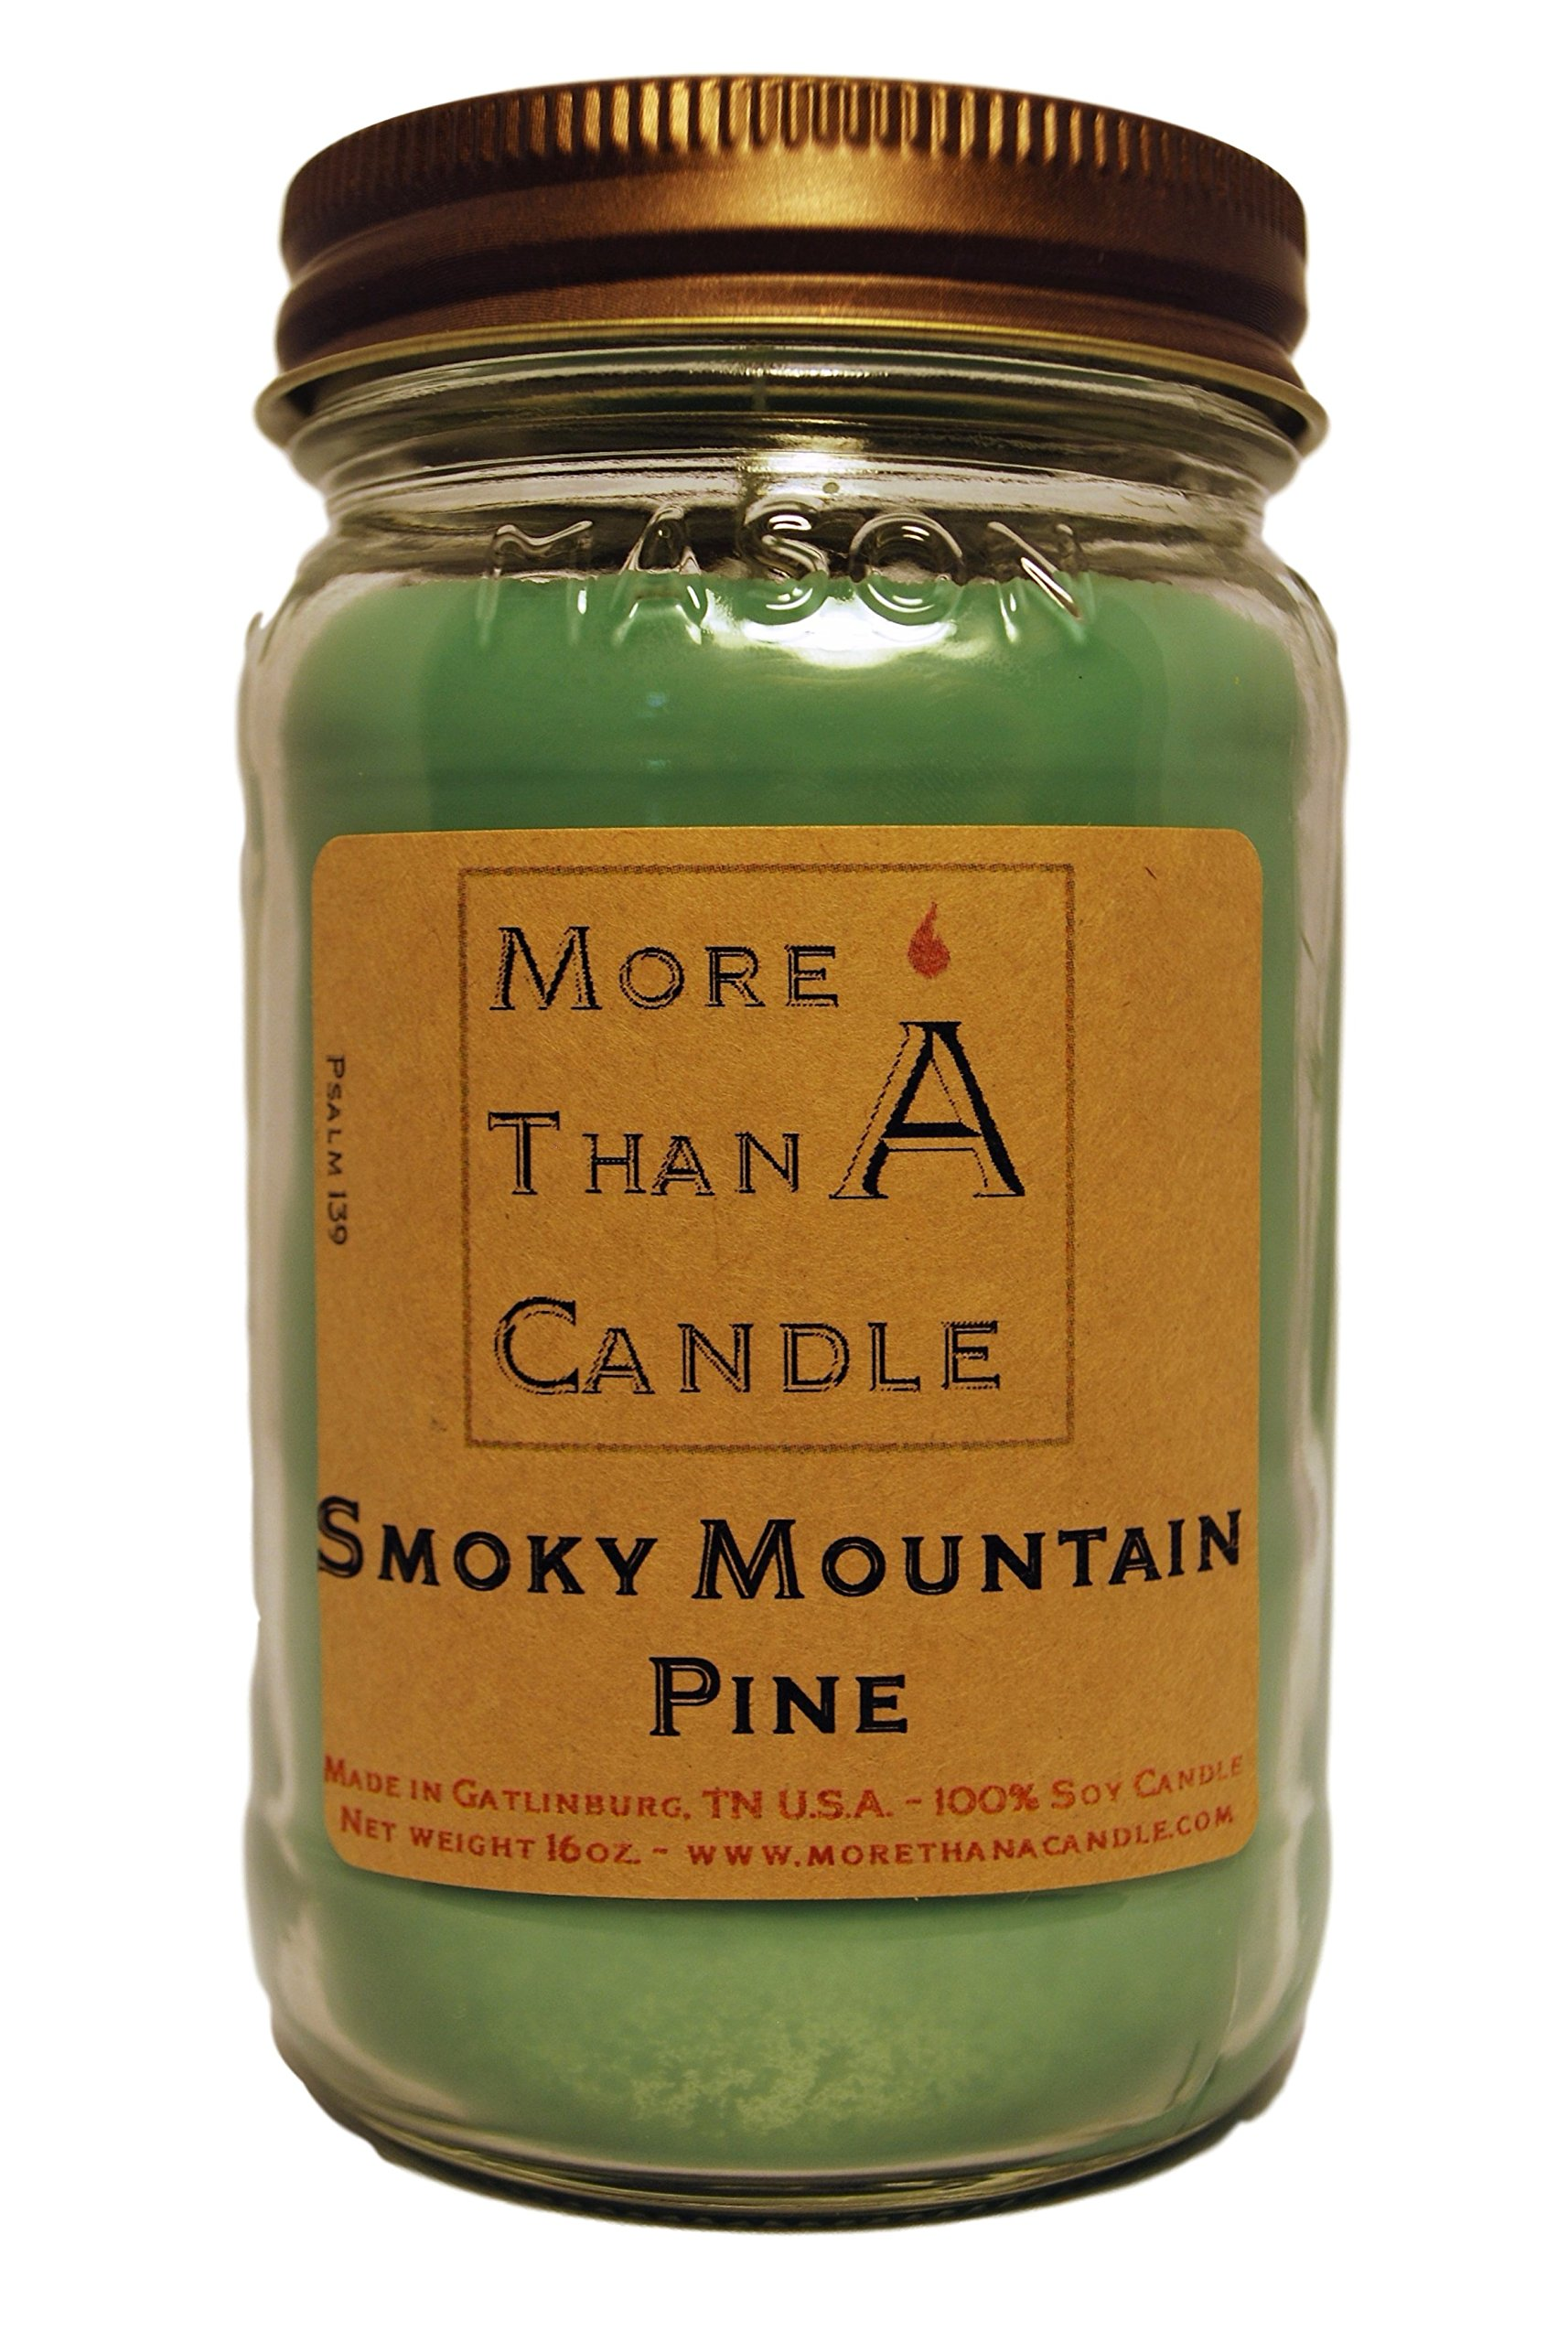 More Than A Candle 16 oz Mason Jar Soy Candle - Made in the USA Smoky Mountain Pine